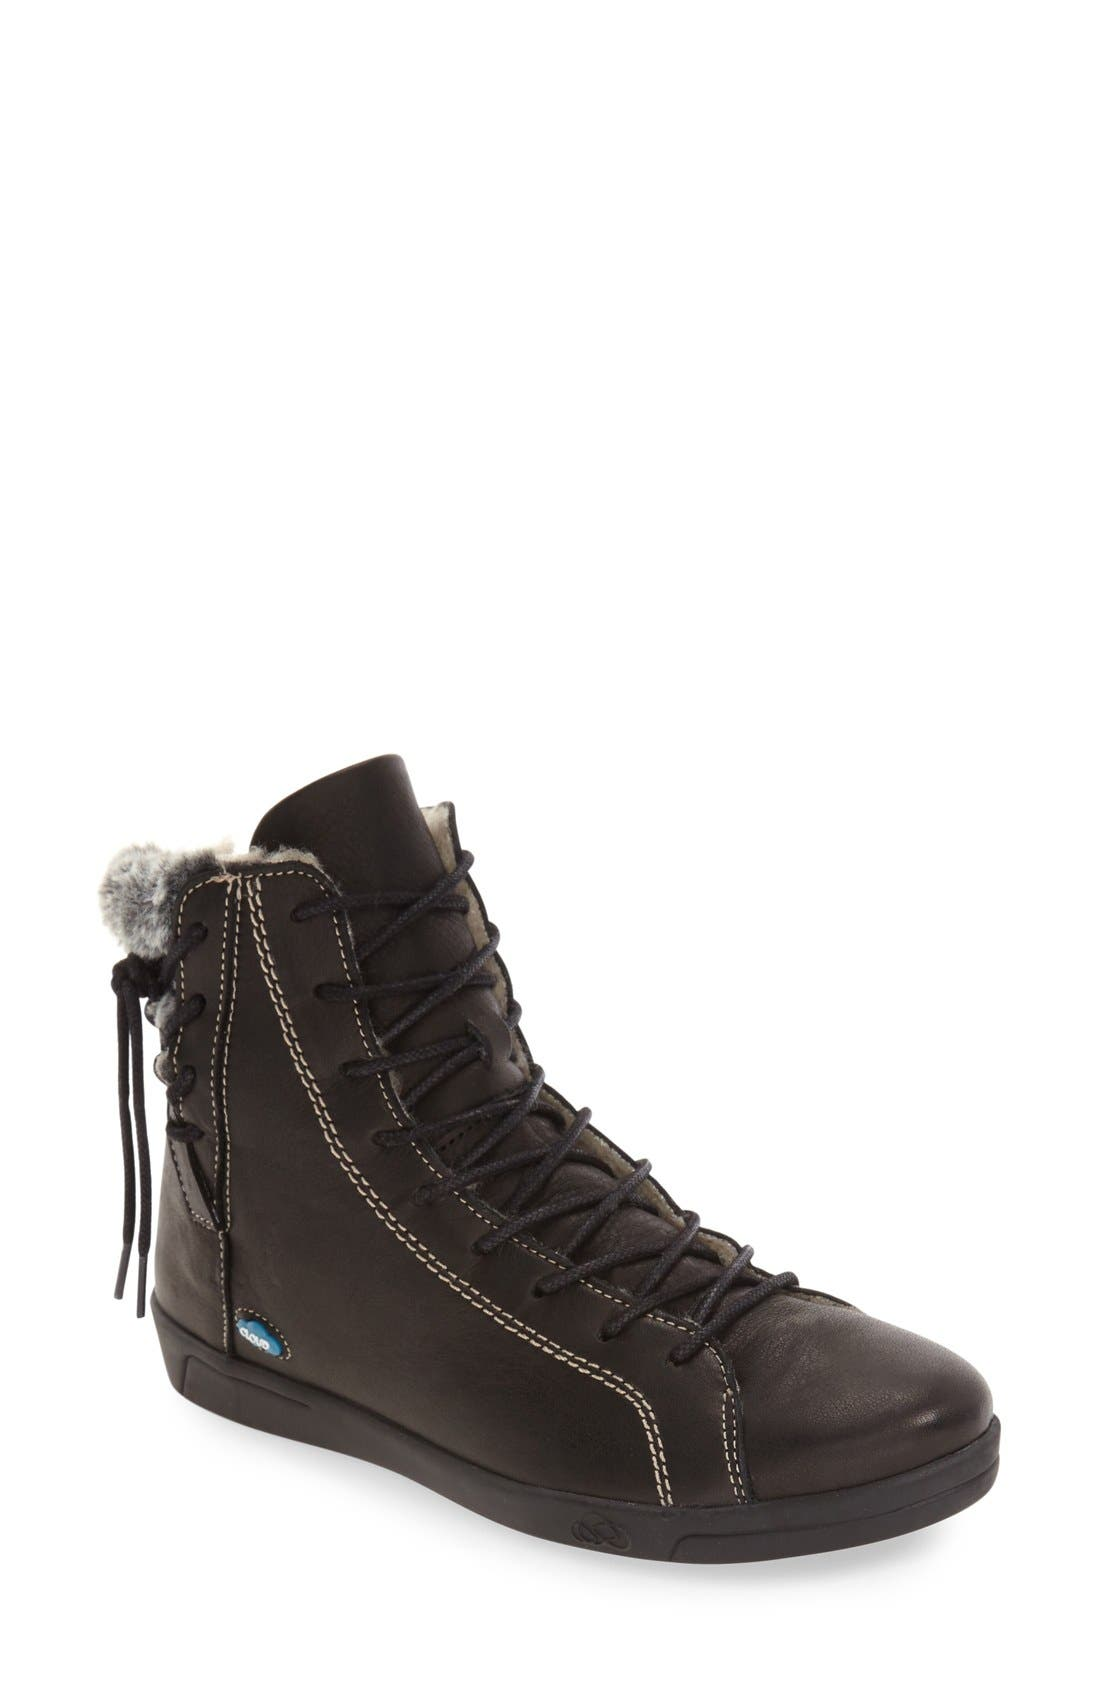 'Astrid' High Top Sneaker,                             Main thumbnail 1, color,                             BLACK LEATHER